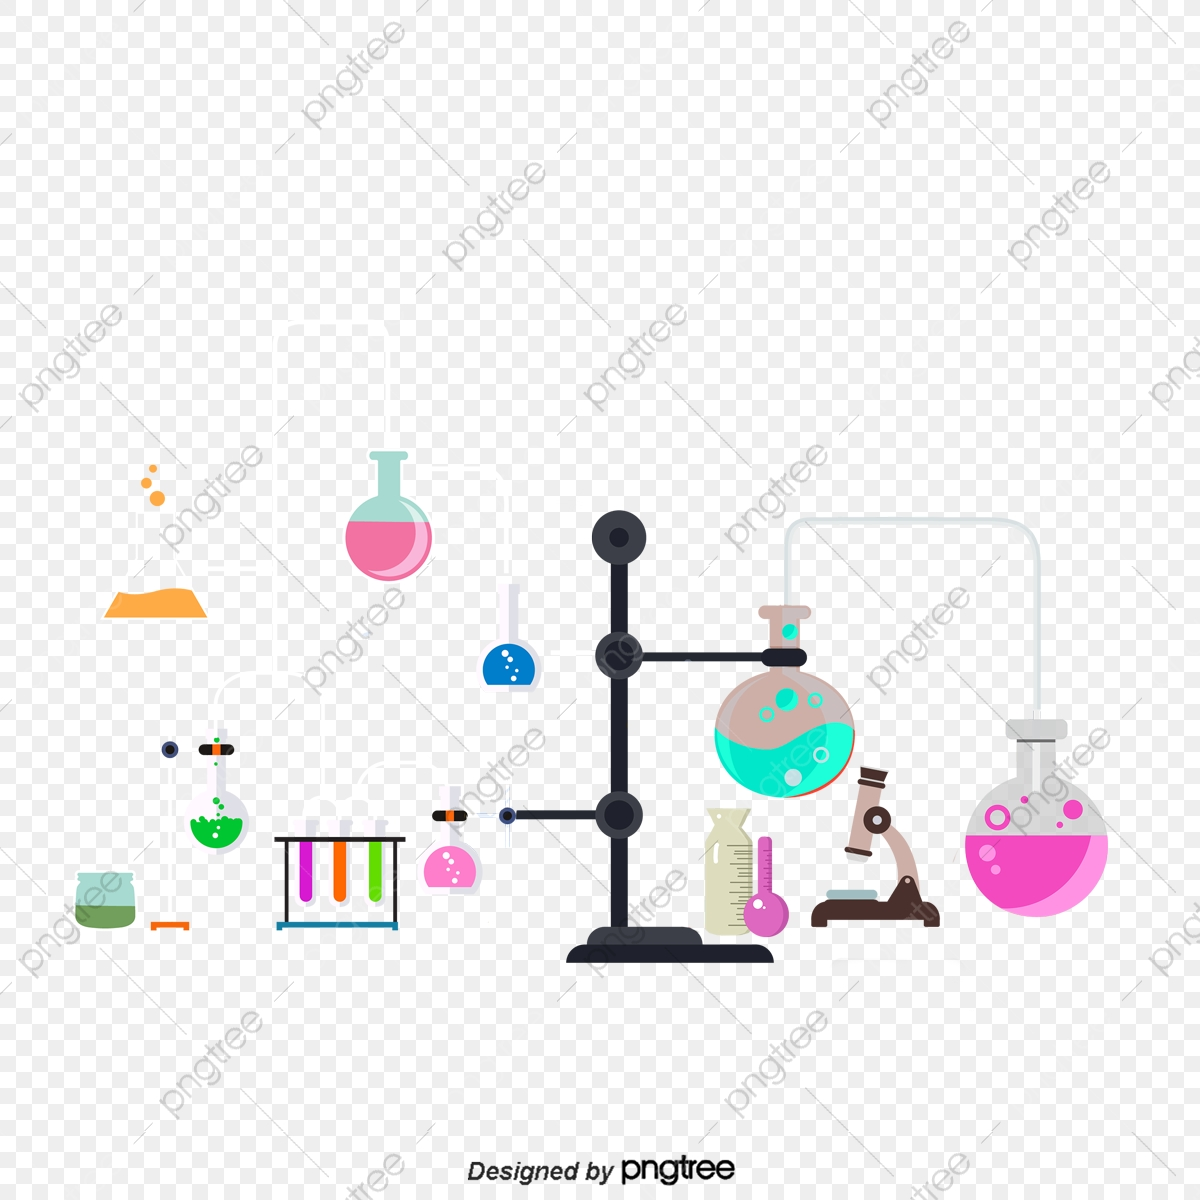 laboratoire de chimie de cr u00e9ation d  u00e9l u00e9ments chimique